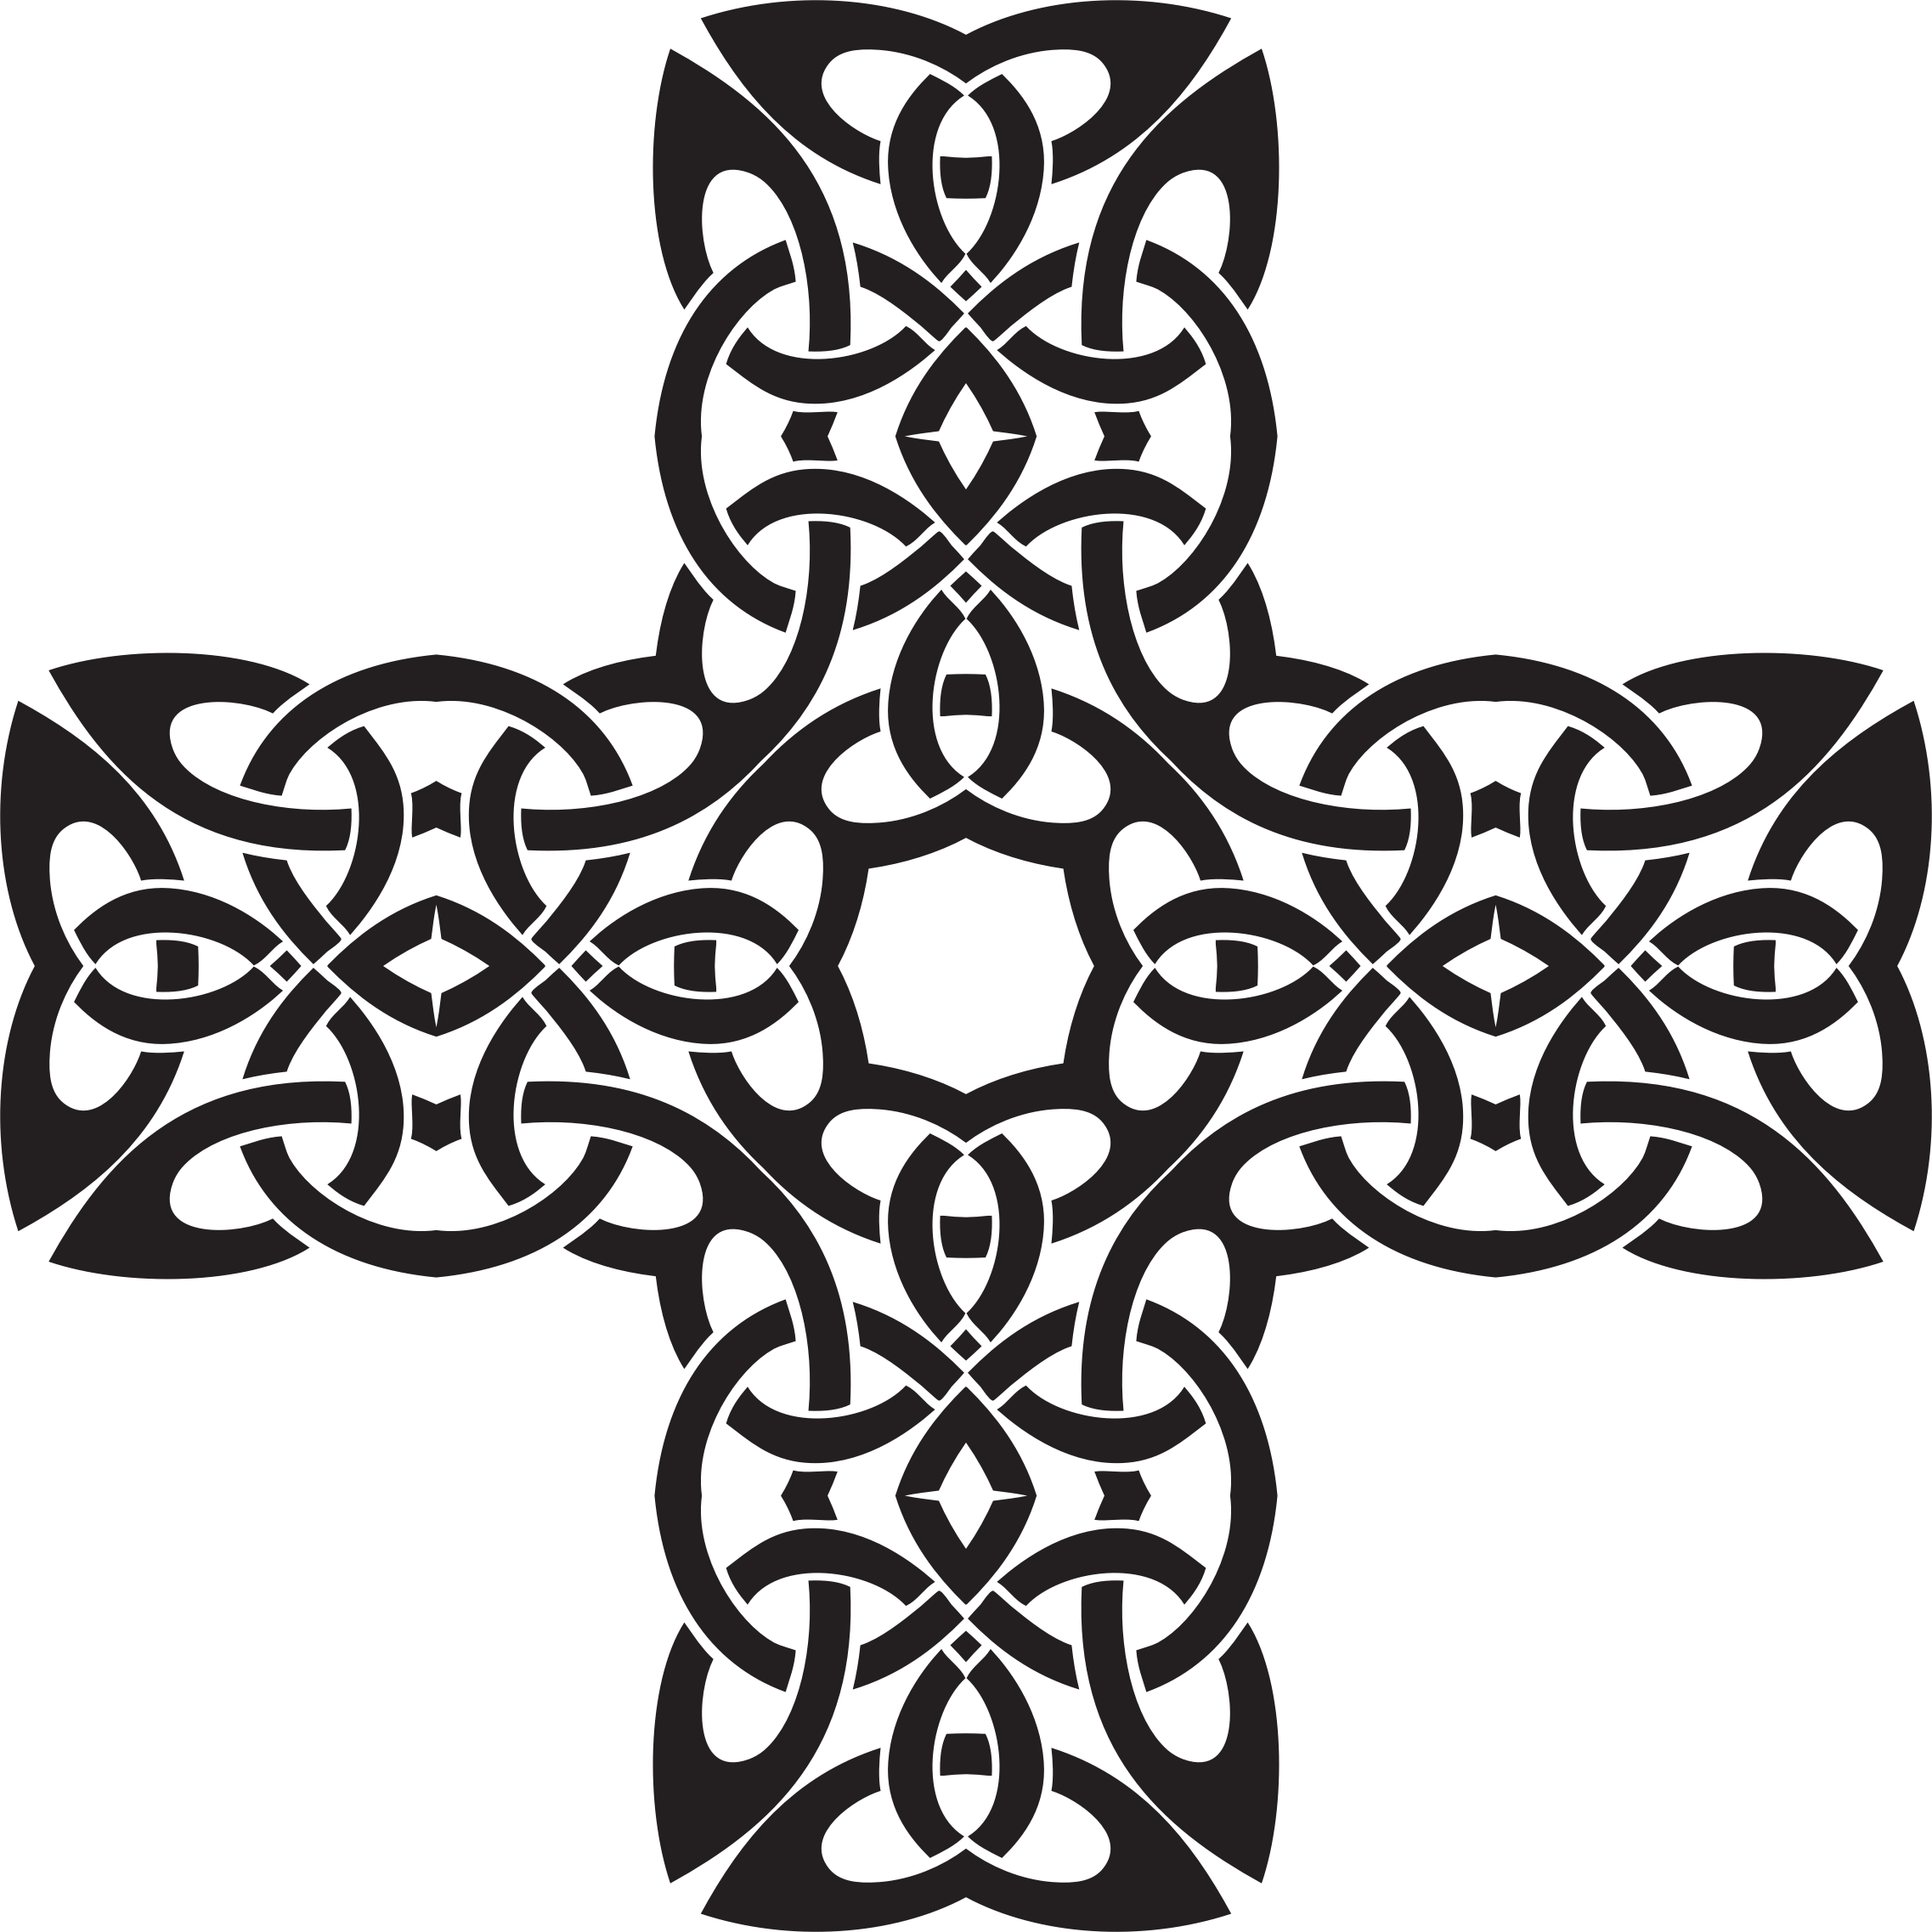 picture royalty free stock Celtic cross clipart black and white. Knot big image png